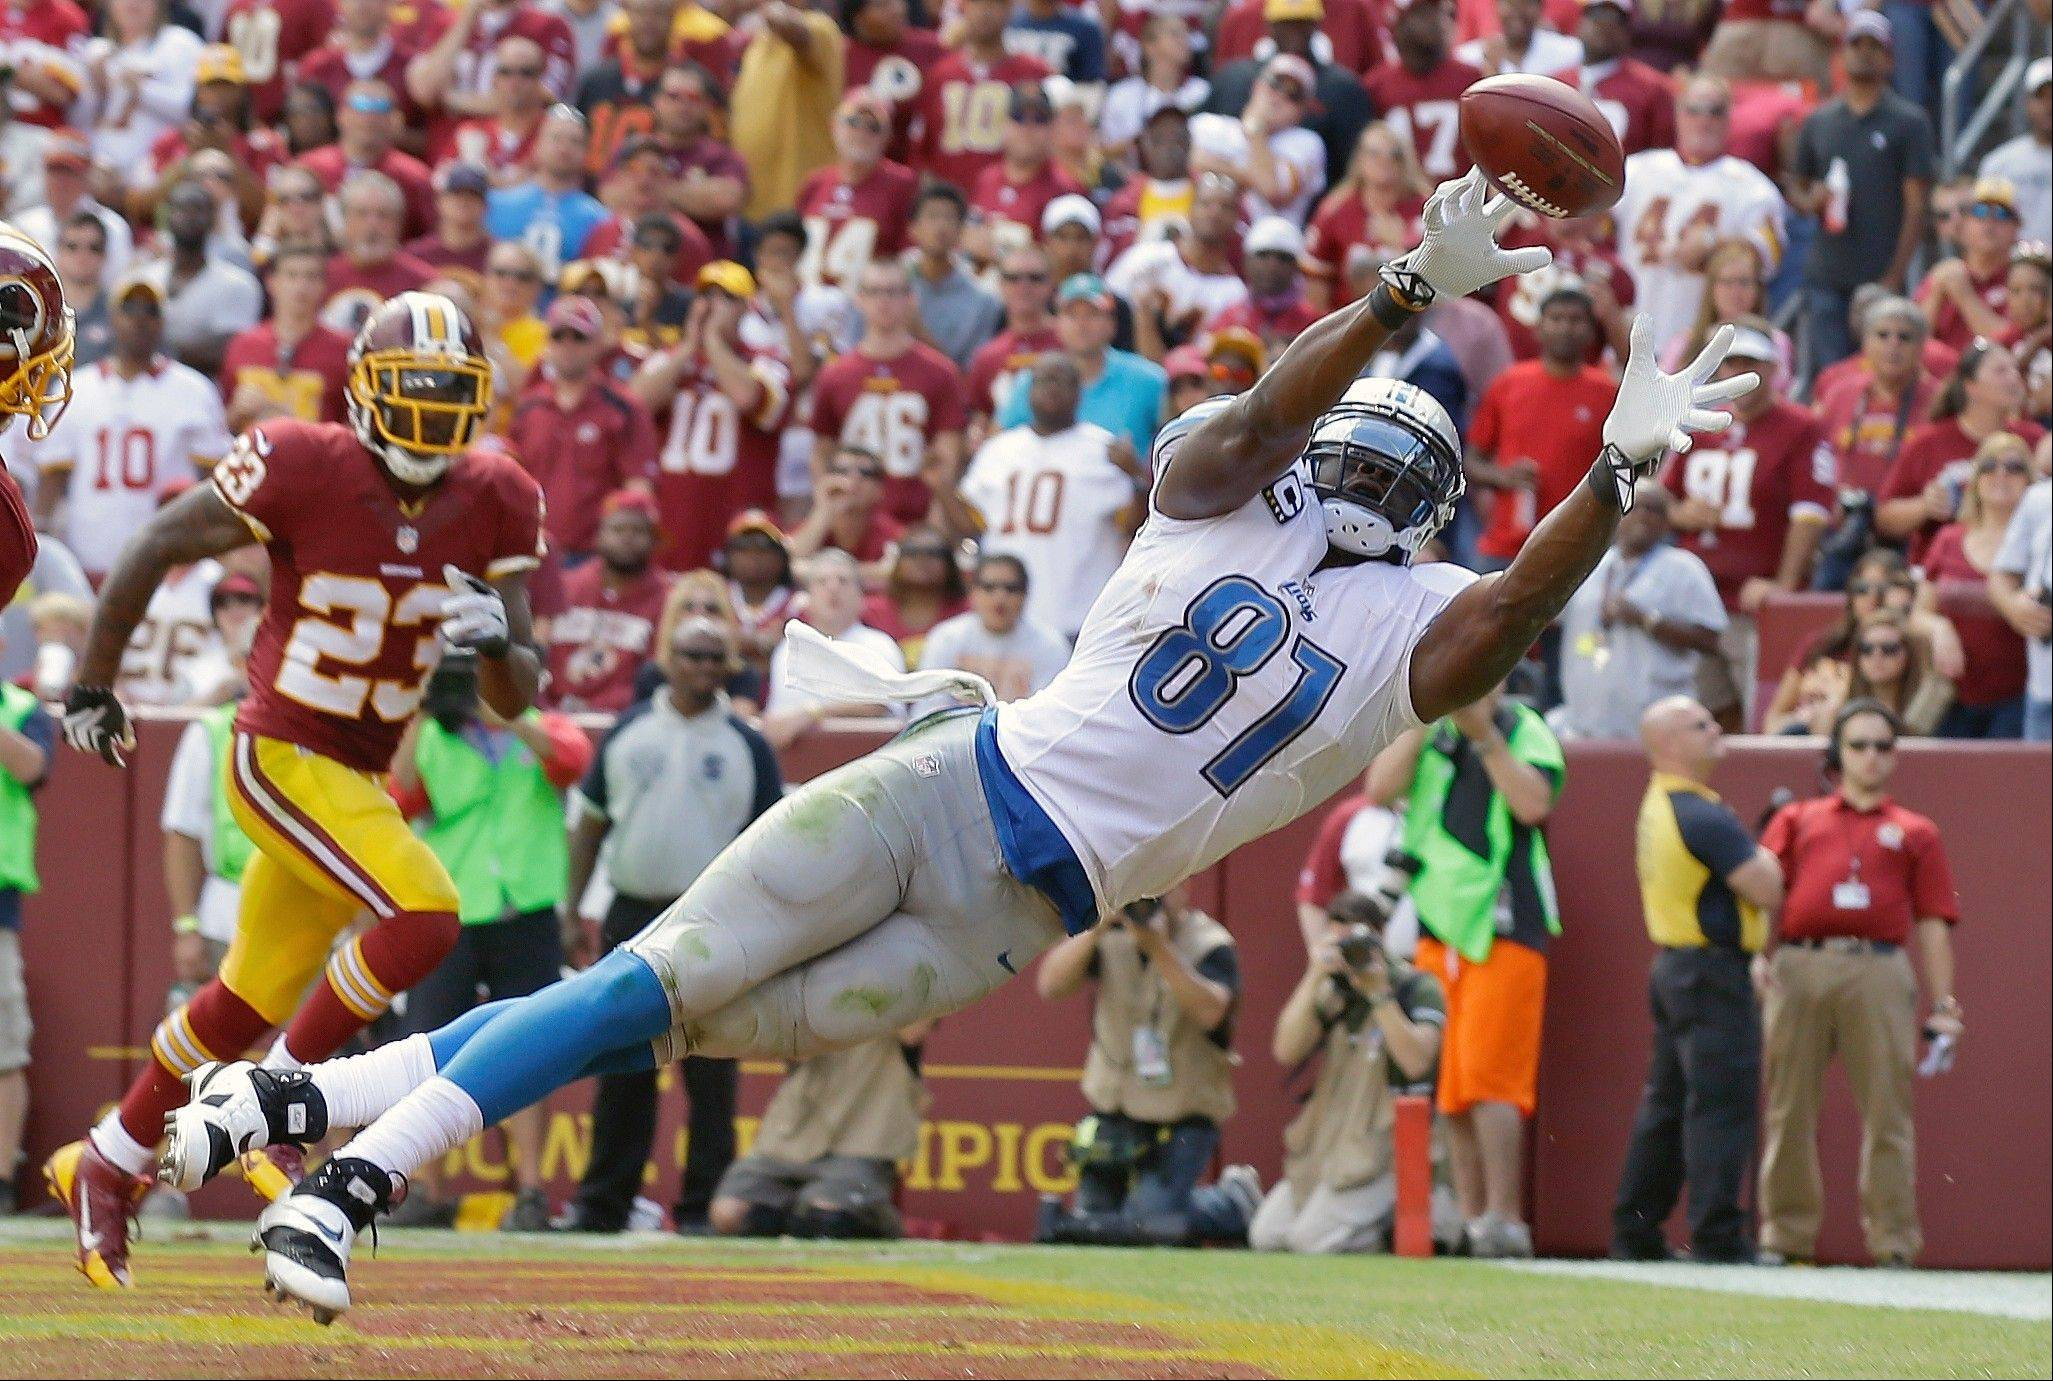 Detroit Lions tight end Brandon Pettigrew can�t quite reach a Matthew Stafford pass in the end zone as Washington Redskins cornerback DeAngelo Hall watches in the background during the first half of a NFL football game in Landover, Md., Sunday, Sept. 22, 2013.